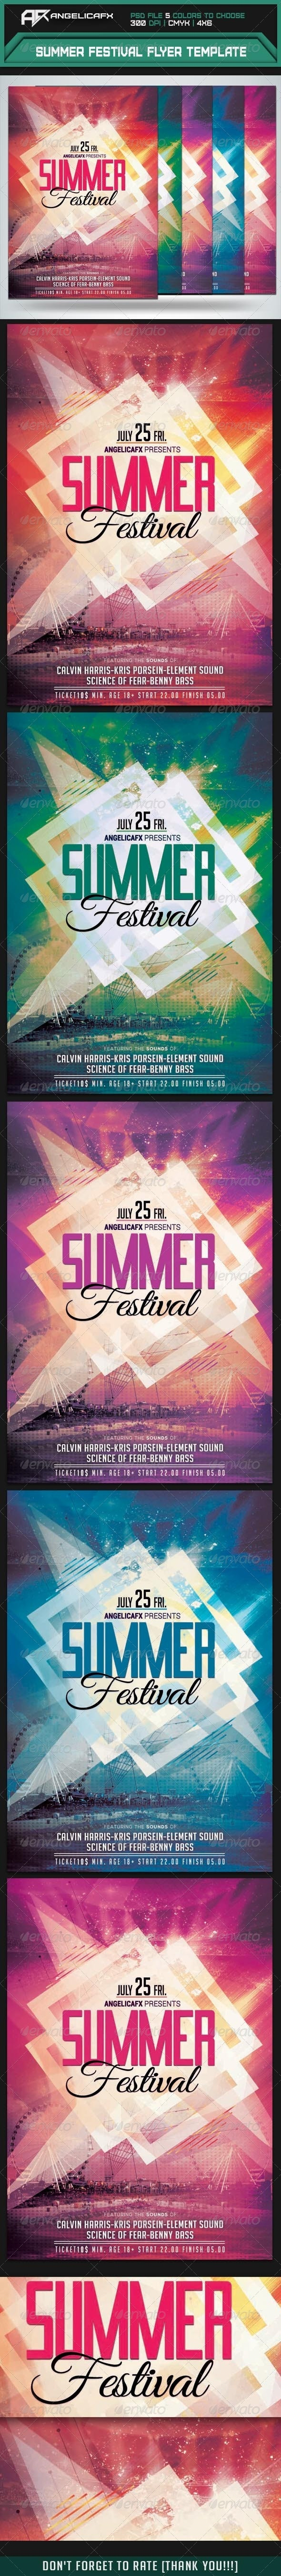 Summer Festival Flyer Template - Flyers Print Templates